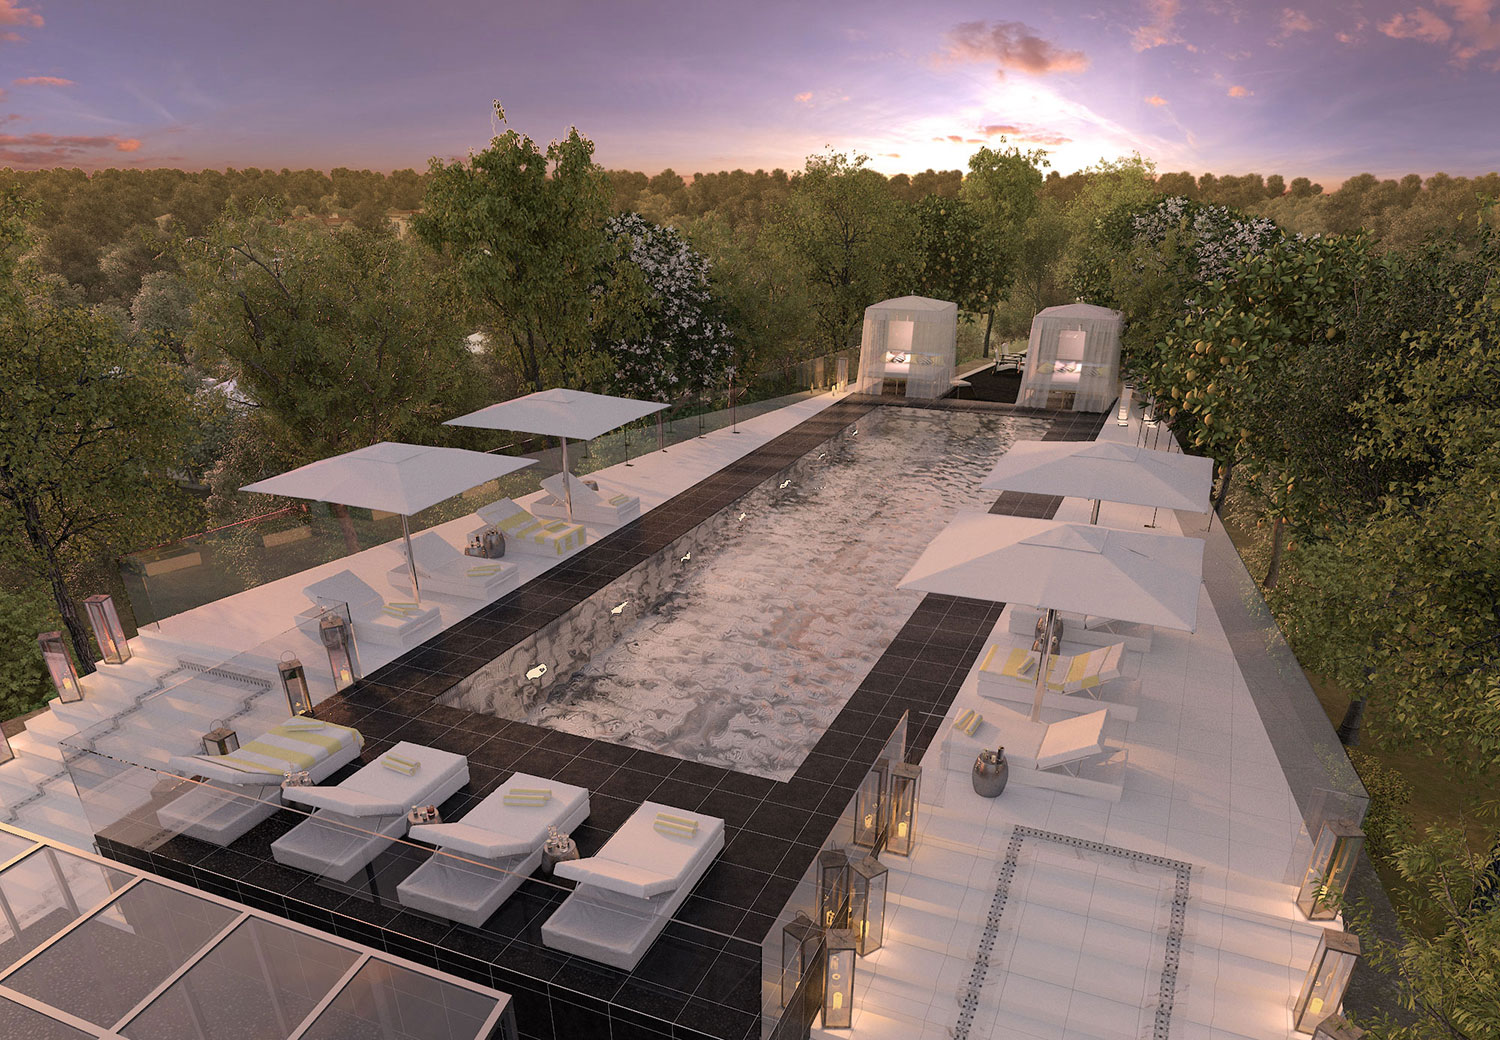 Rooftop terrace, G by Yoo, Istanbul